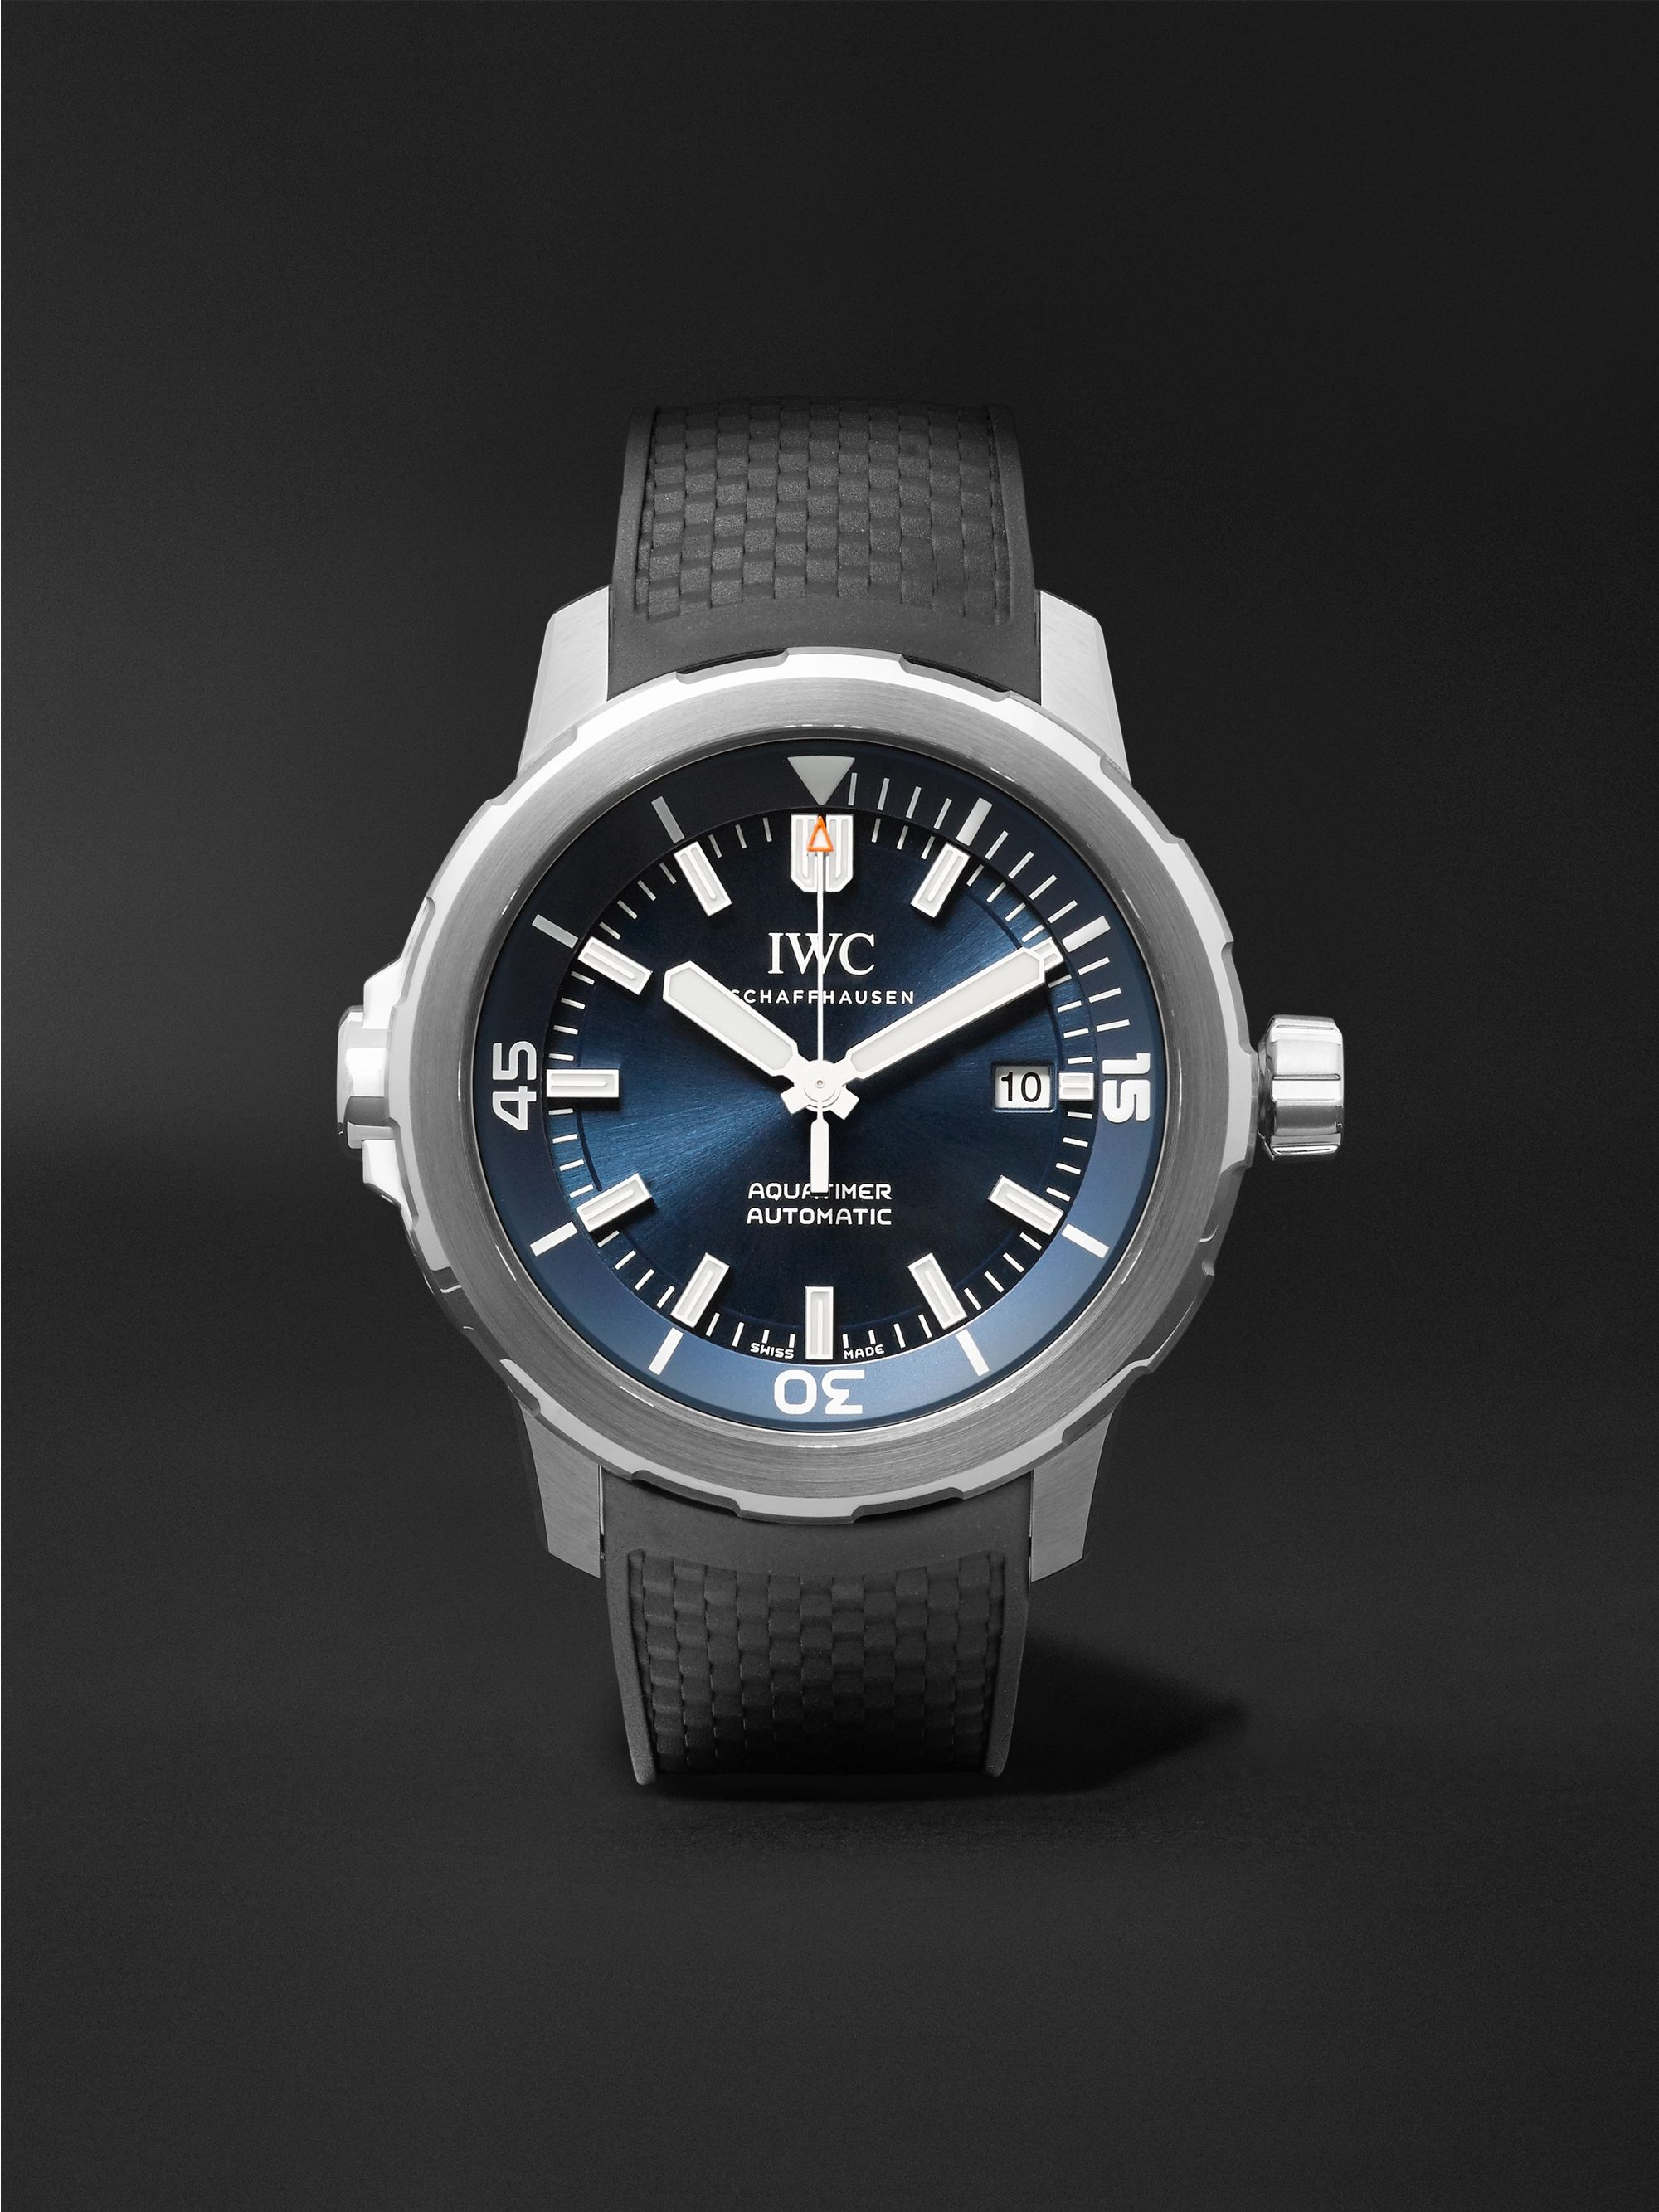 IWC SCHAFFHAUSEN Aquatimer Expedition Jacques-Yves Cousteau 42mm Stainless Steel and Rubber Watch, Ref. No. IW329005